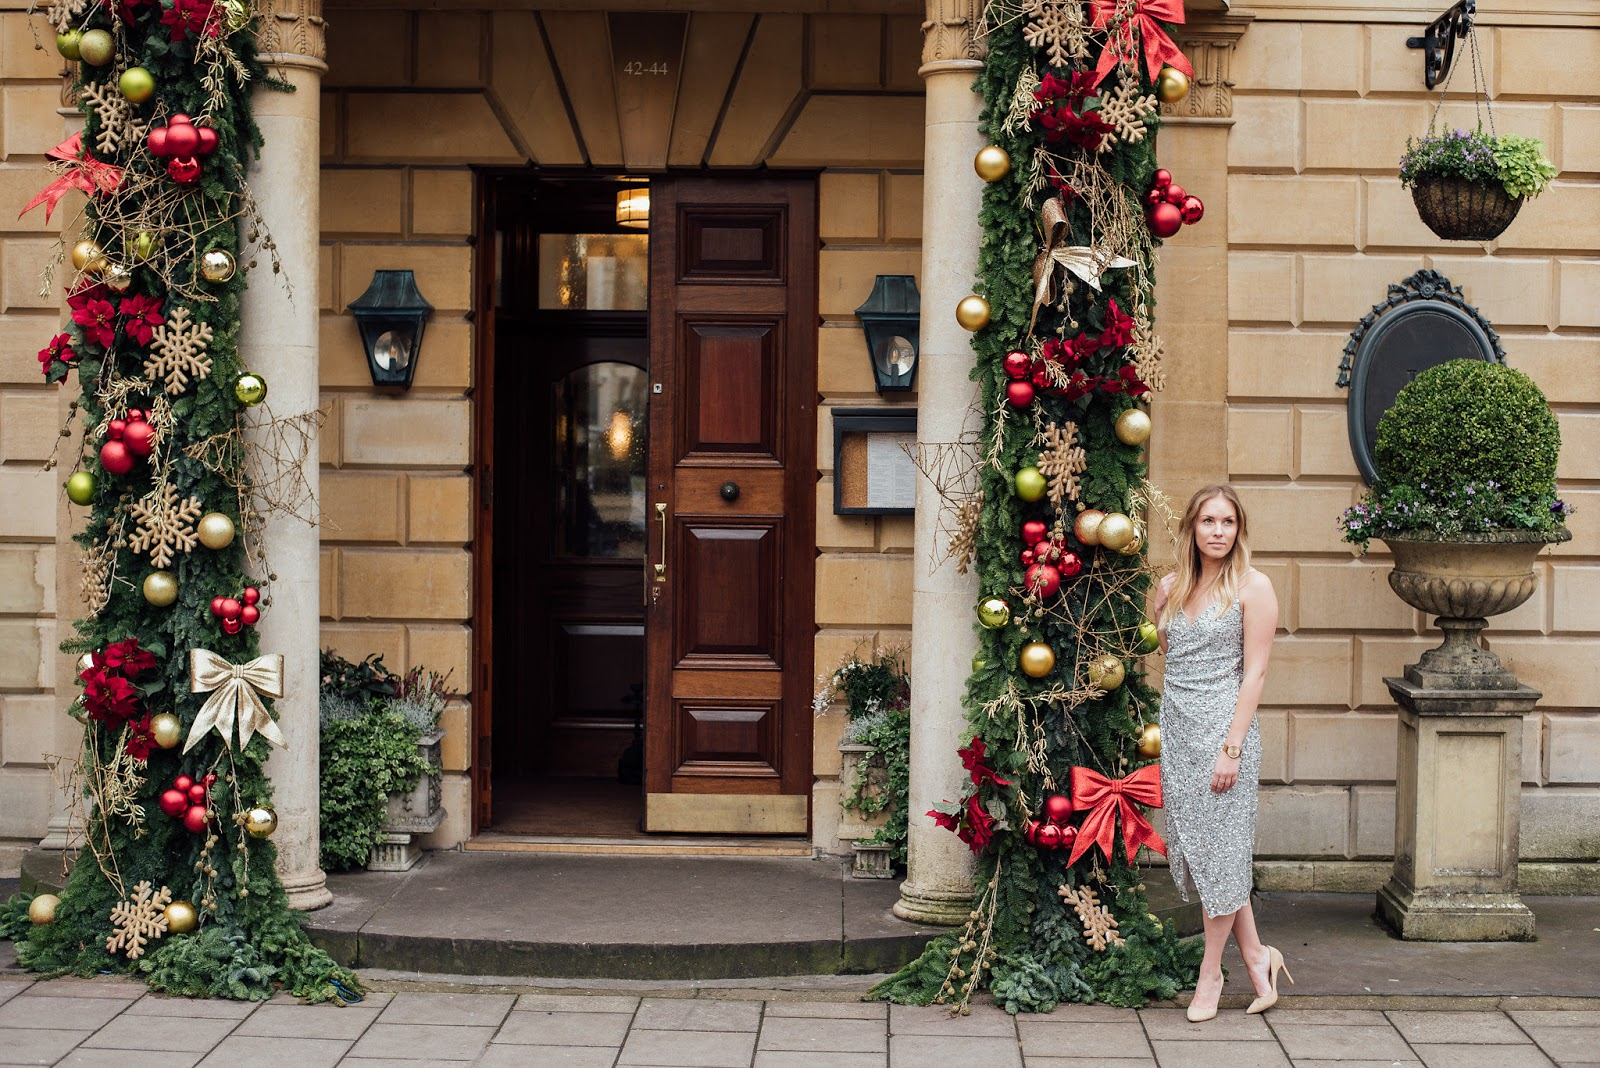 Fashion | The Only Dress You Need For The Christmas Party Season Christmas Party Dress Outside the Ivy Clifton Brasserie with Christmas Decorations